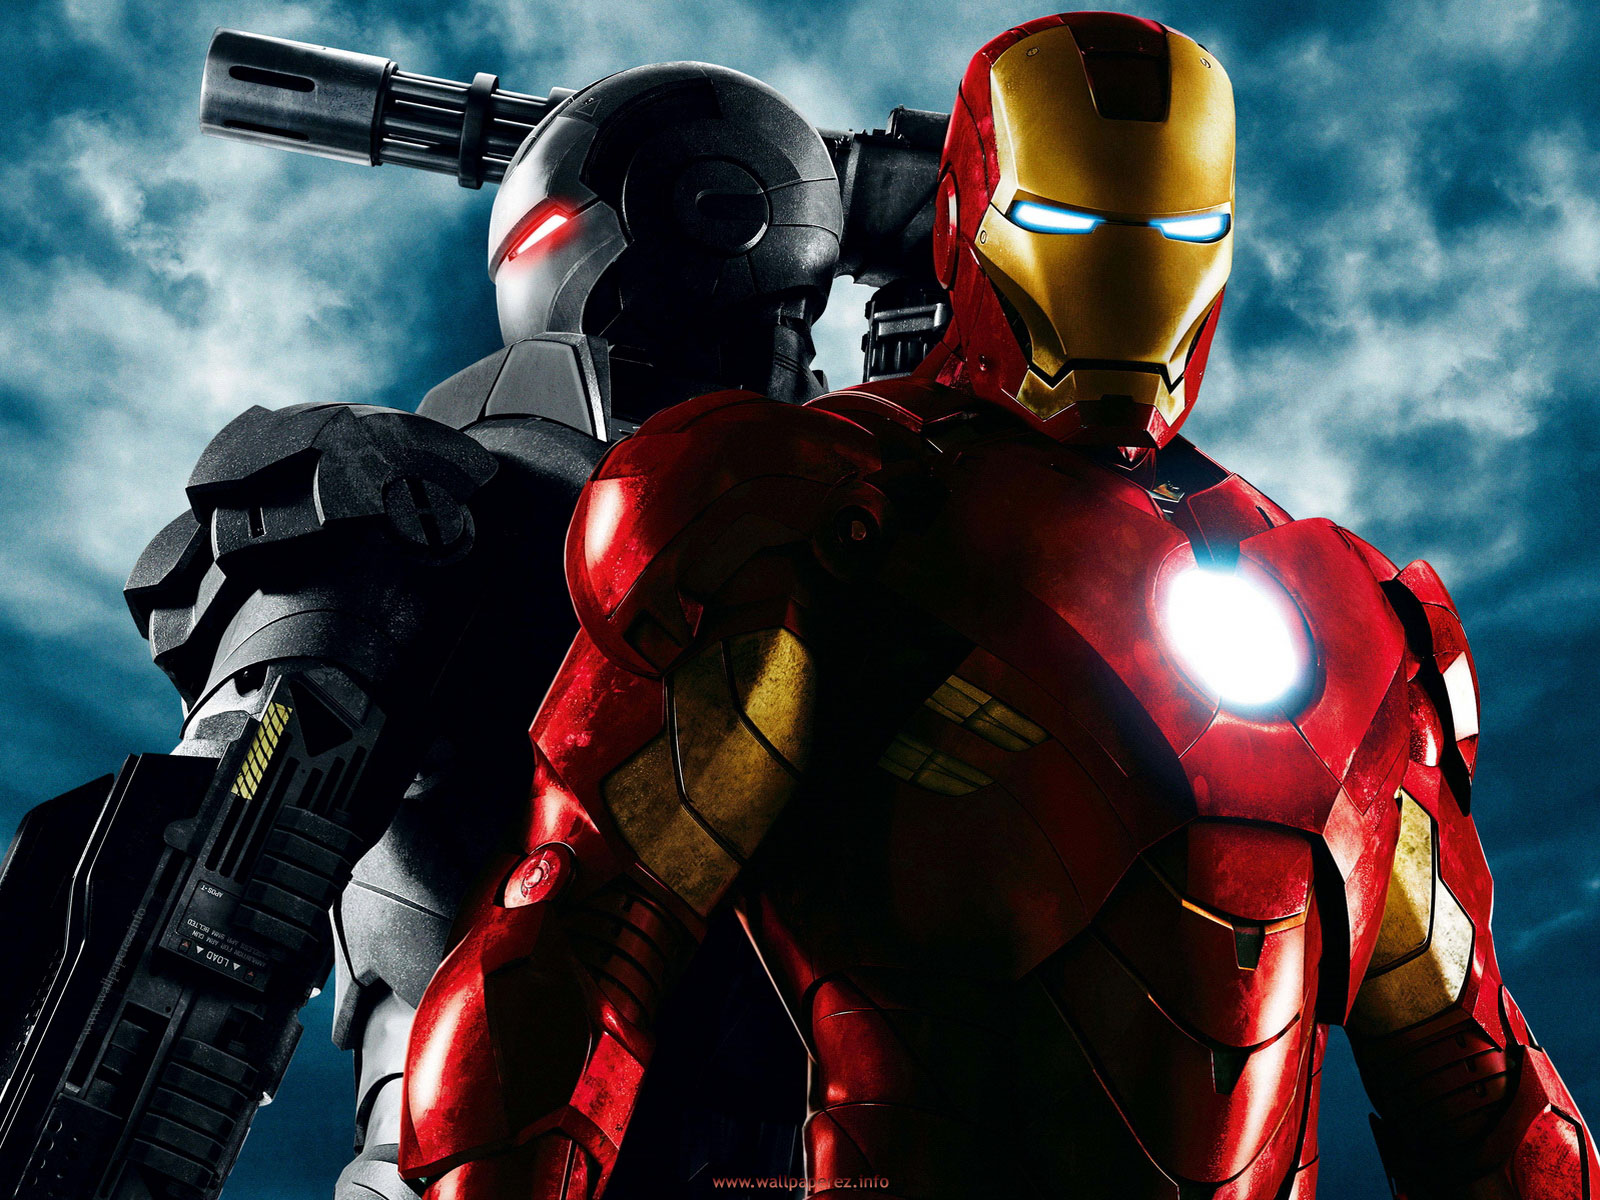 Iron man high quality wallpapers free download